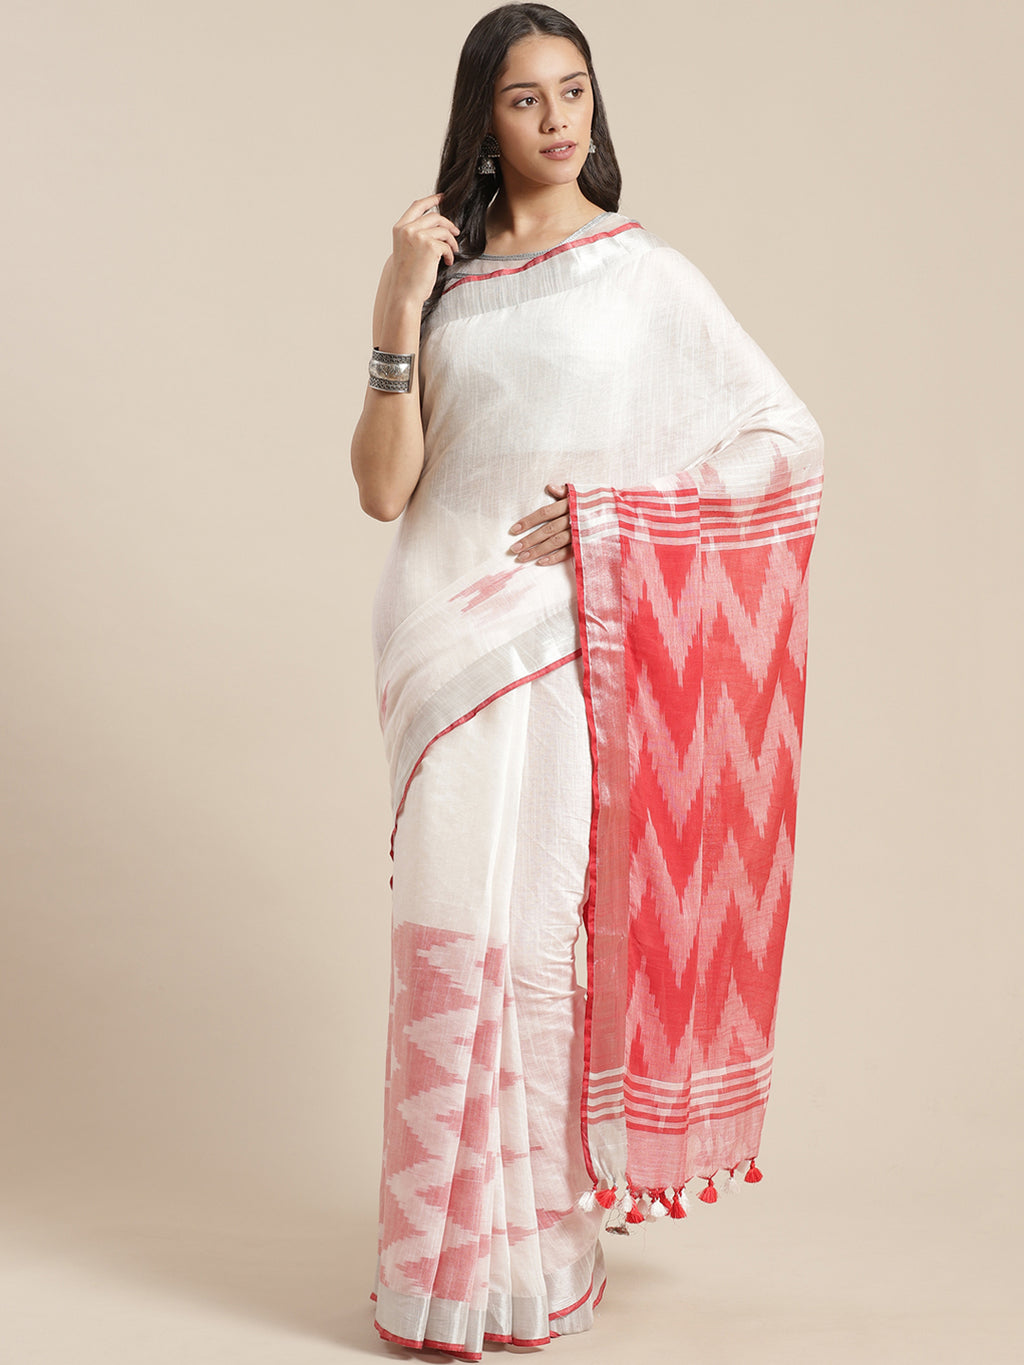 Linen Handwoven Saree and Blouse-Saree-Kalakari India-ALBGSA0044-Hand Woven, Linen, Sarees, Sustainable Fabrics, Traditional Weave-[Linen,Ethnic,wear,Fashionista,Handloom,Handicraft,Indigo,blockprint,block,print,Cotton,Chanderi,Blue, latest,classy,party,bollywood,trendy,summer,style,traditional,formal,elegant,unique,style,hand,block,print, dabu,booti,gift,present,glamorous,affordable,collectible,Sari,Saree,printed, holi, Diwali, birthday, anniversary, sustainable, organic, scarf, online, low pri